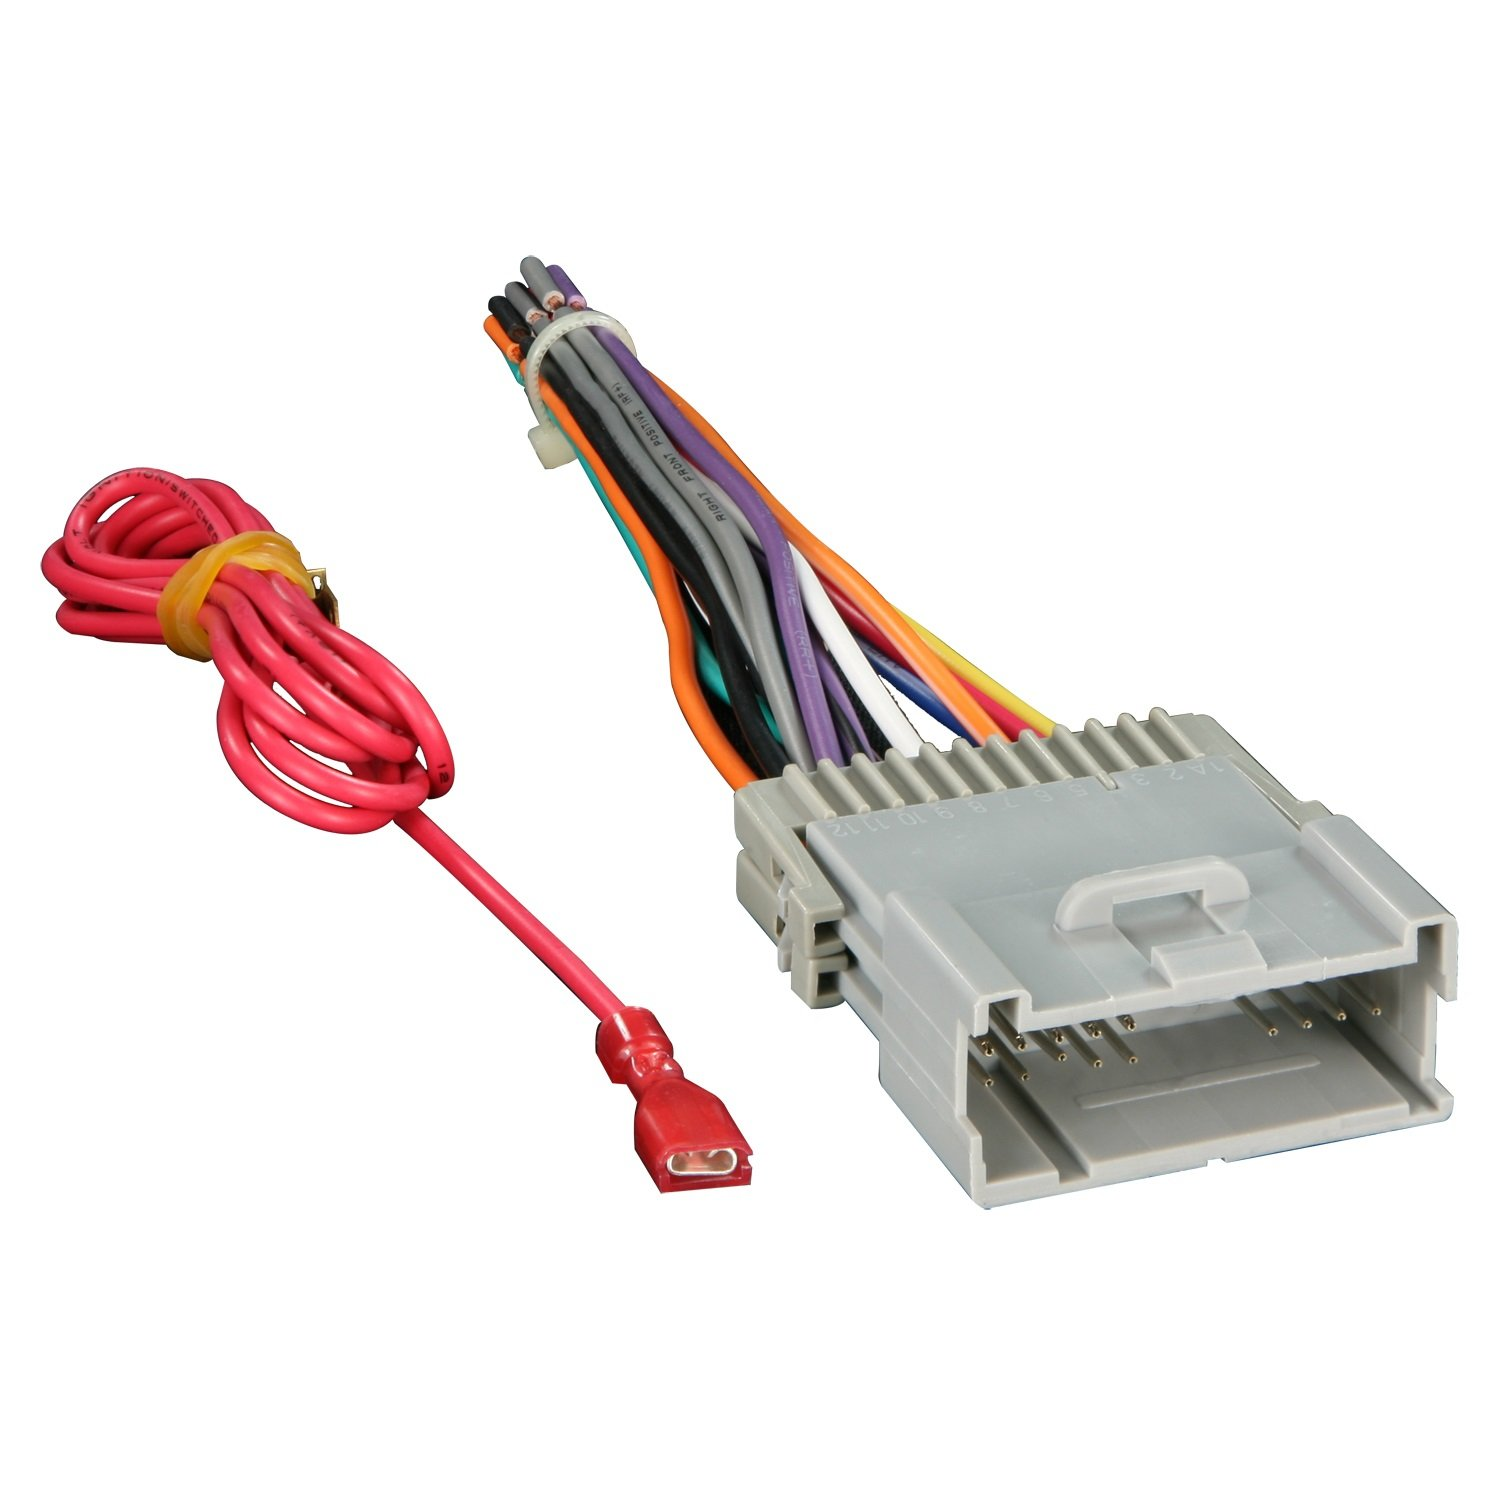 61eewxp9orL._SL1500_ amazon com metra 70 2003 radio wiring harness for gm 98 08  at nearapp.co